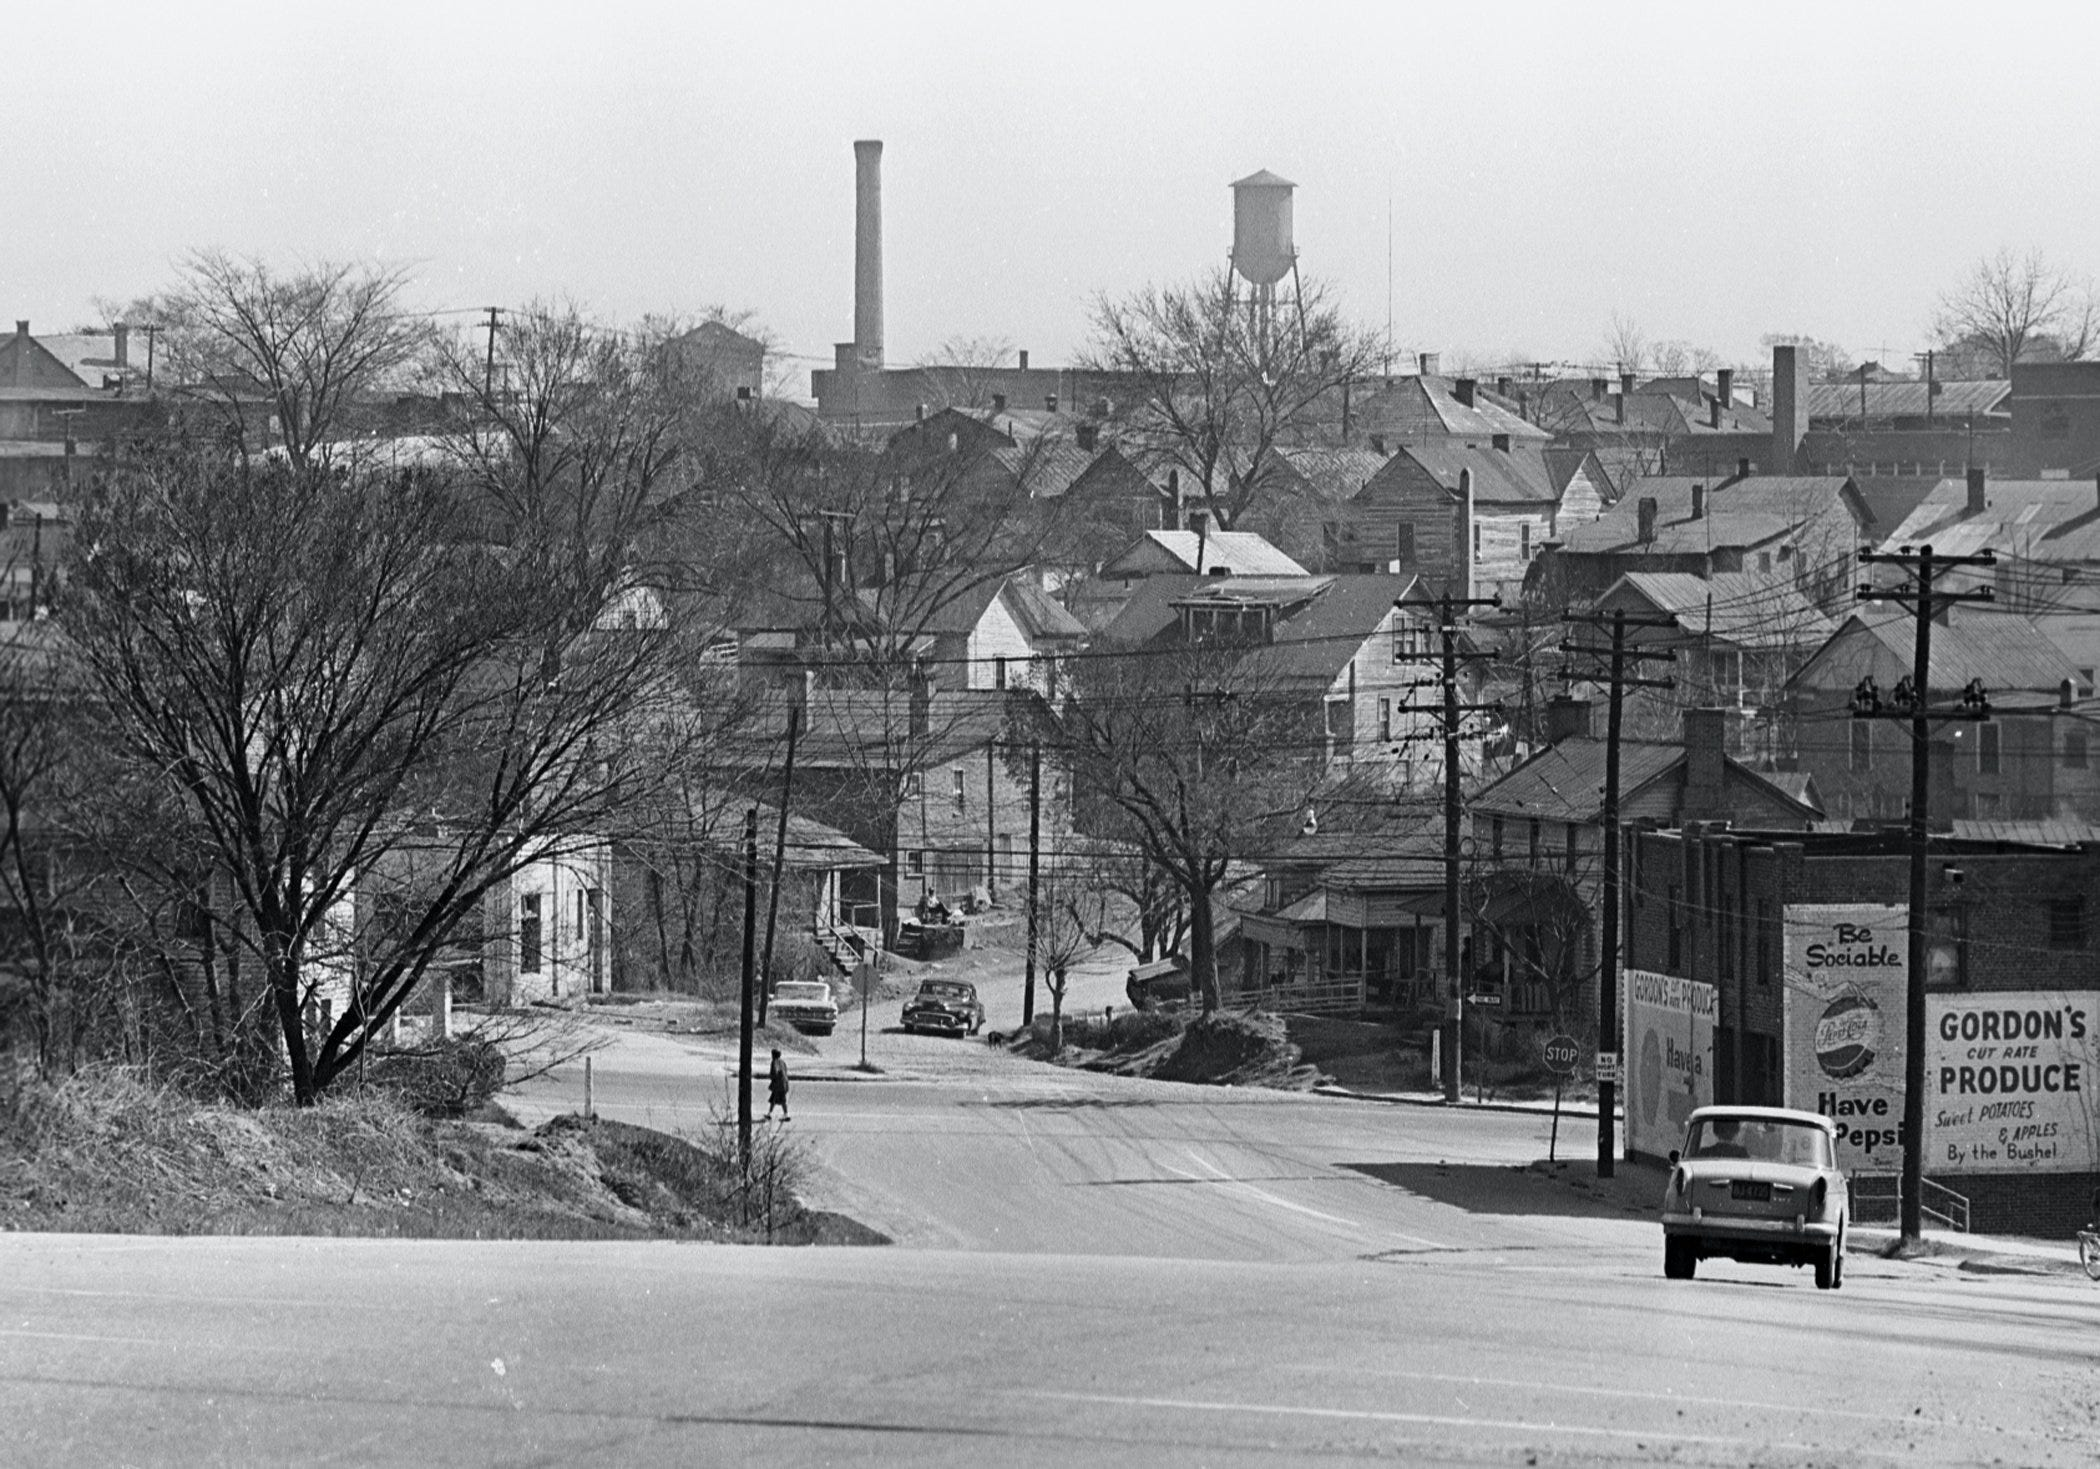 File photo, from March 1, 1965, shows a portion of the Hayti community that was cleared out during Durham's Urban Renewal project.